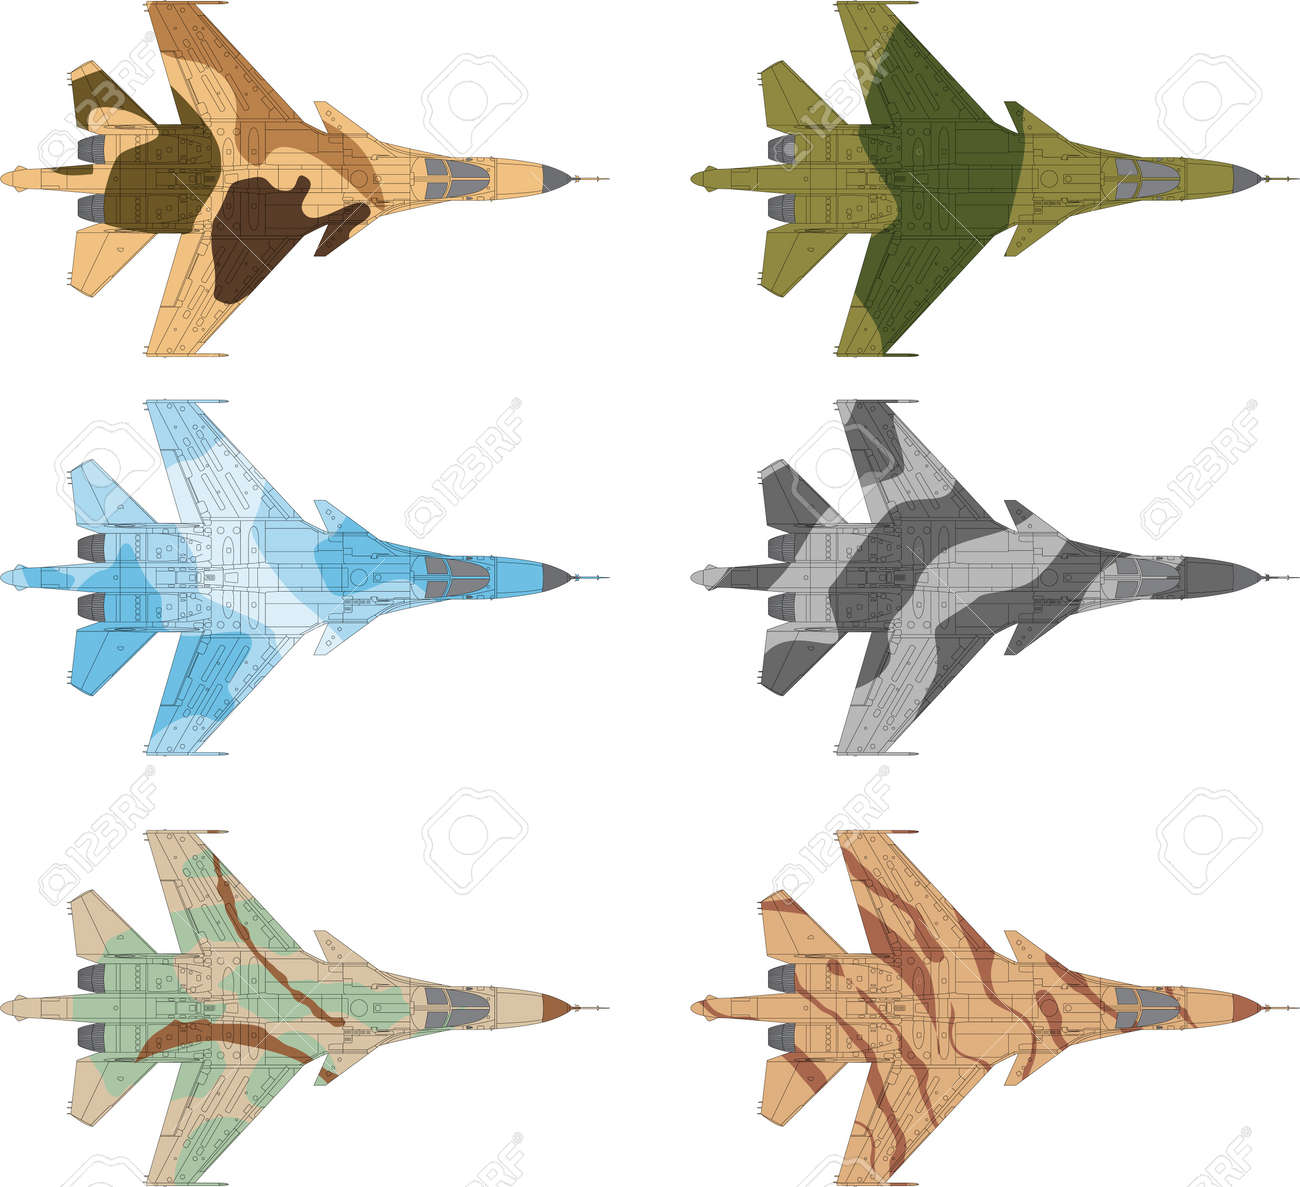 High detailed vector illustration of a modern military airplane top view with six camouflage patterns - 13625510